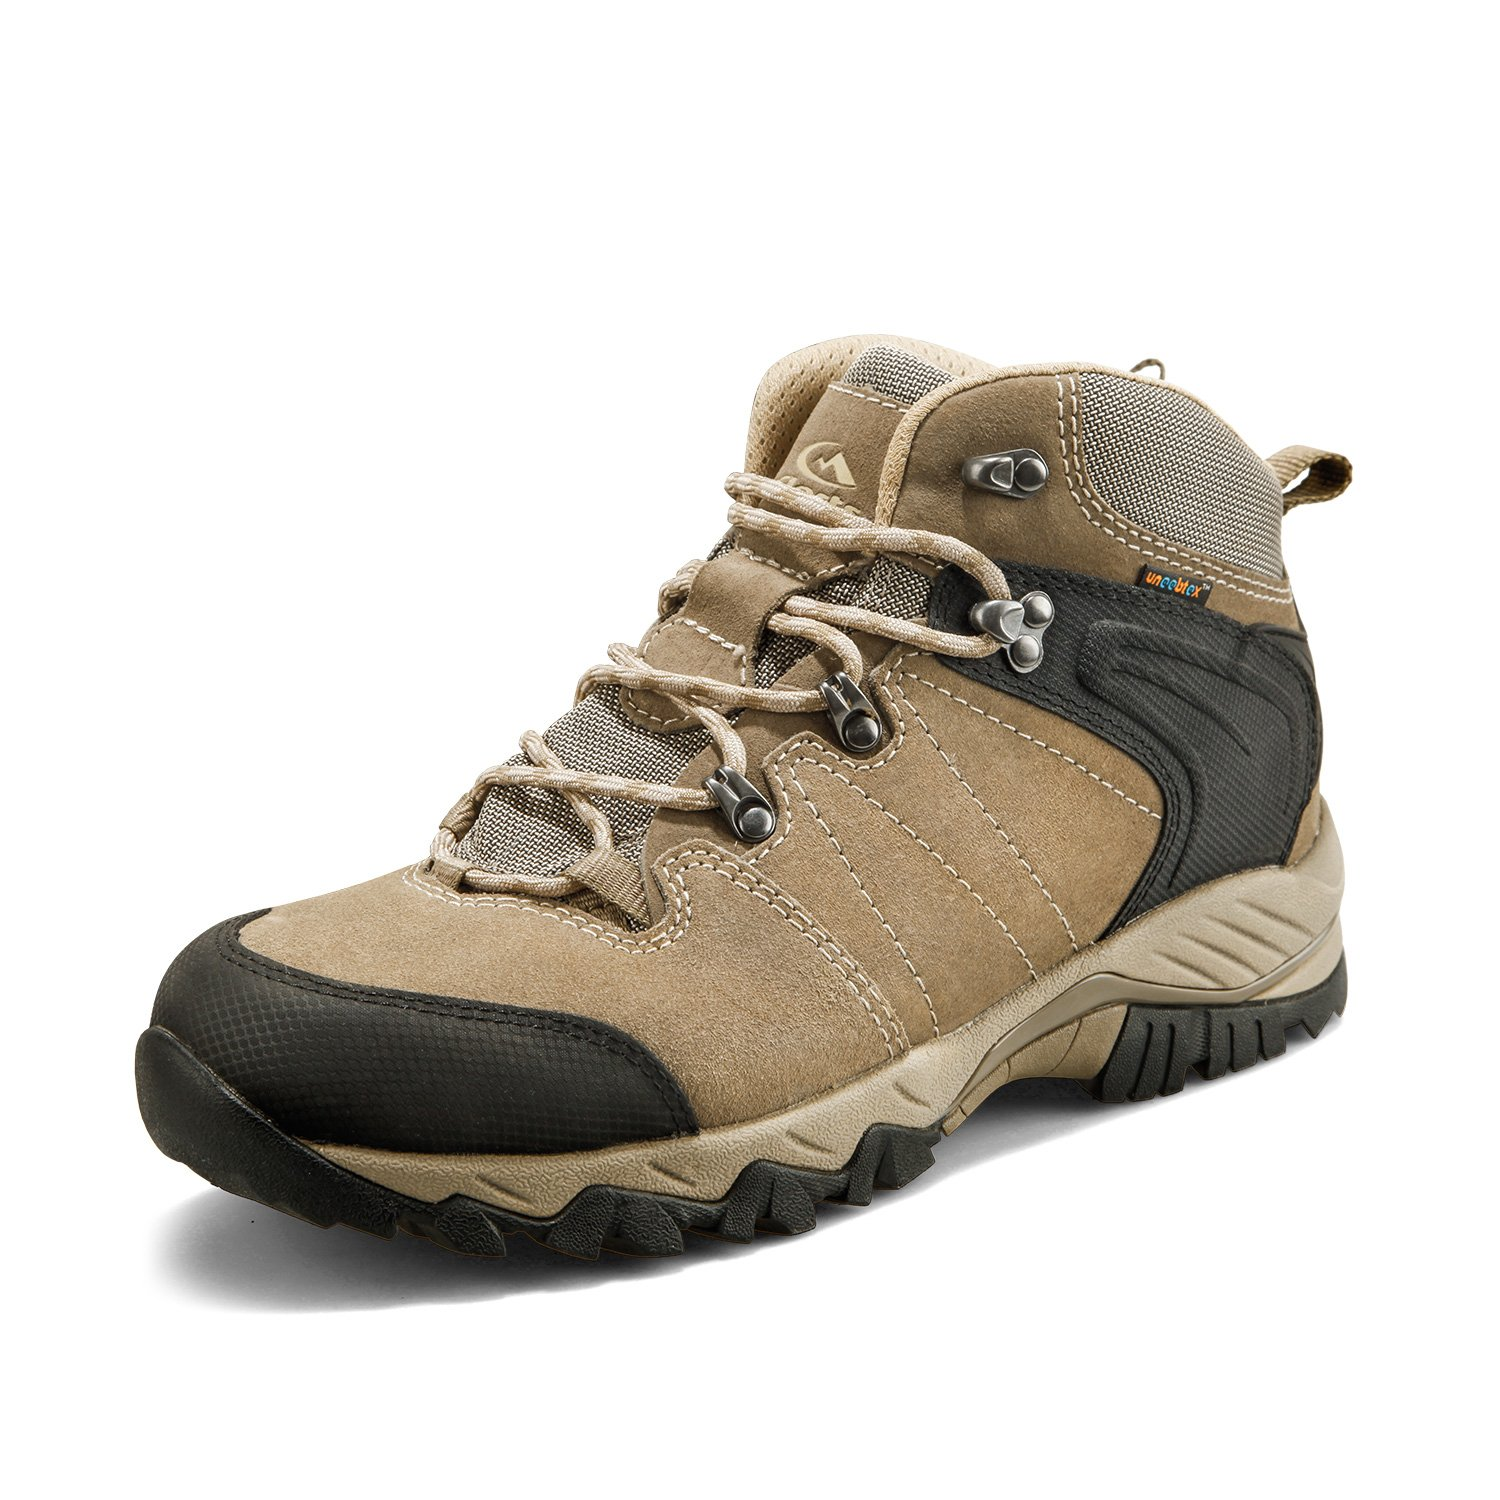 Clorts Men's Waterproof Hiking Boot Outdoor Backpacking Hiker Brown HKM-822G US9.5 by Clorts